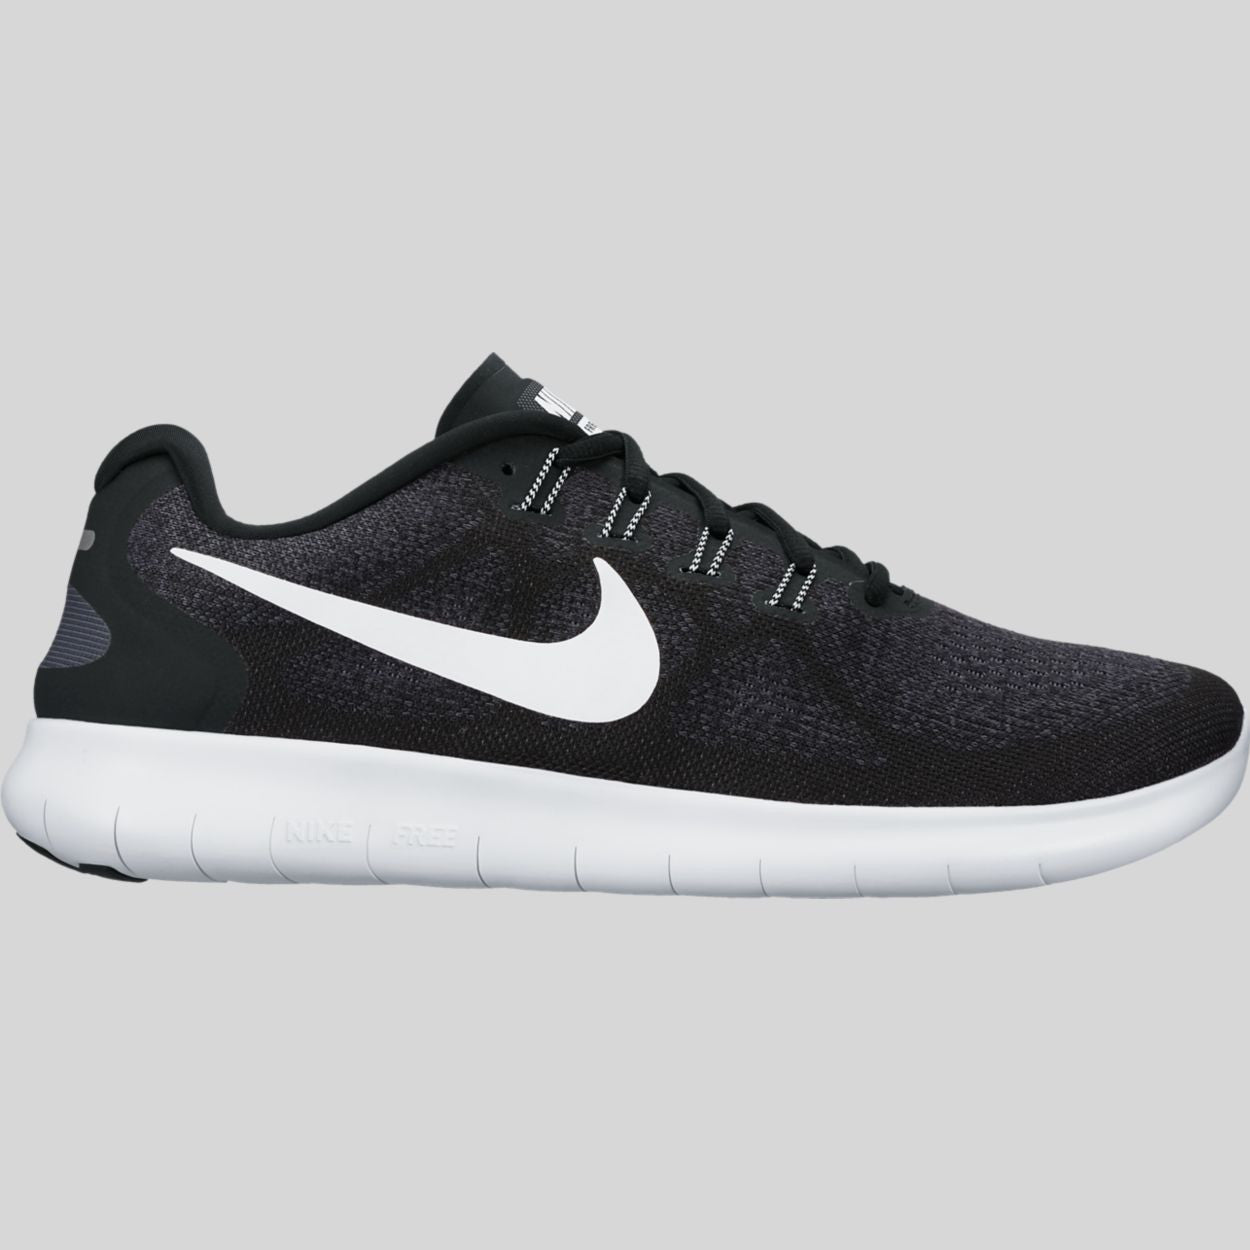 468a4cf89039e Nike Free RN 2017 Black White Dark Grey Anthracite (880839-001)